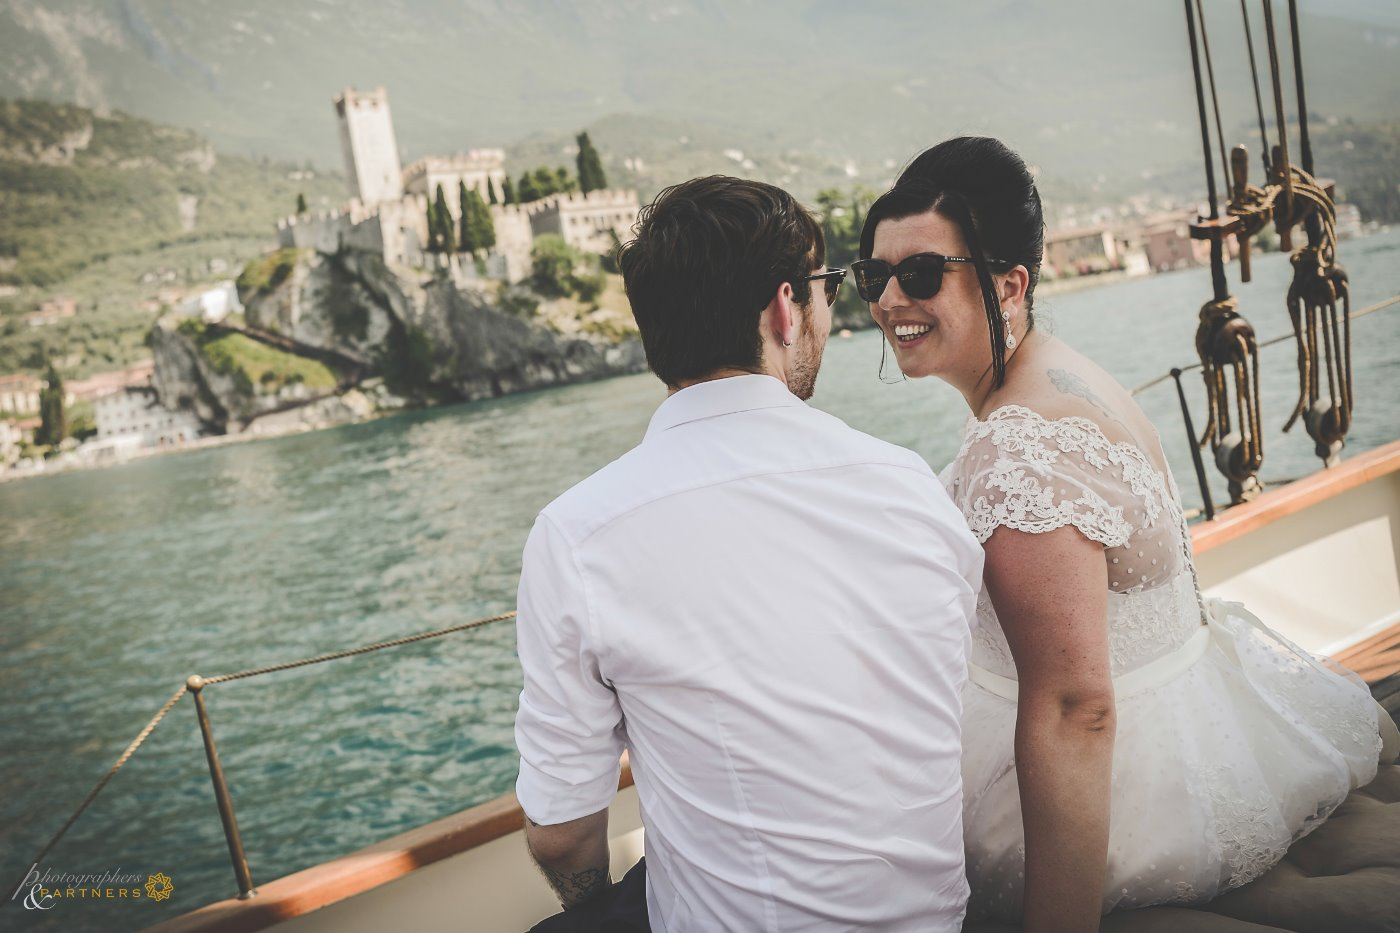 photographer_weddings_malcesine_17.jpg